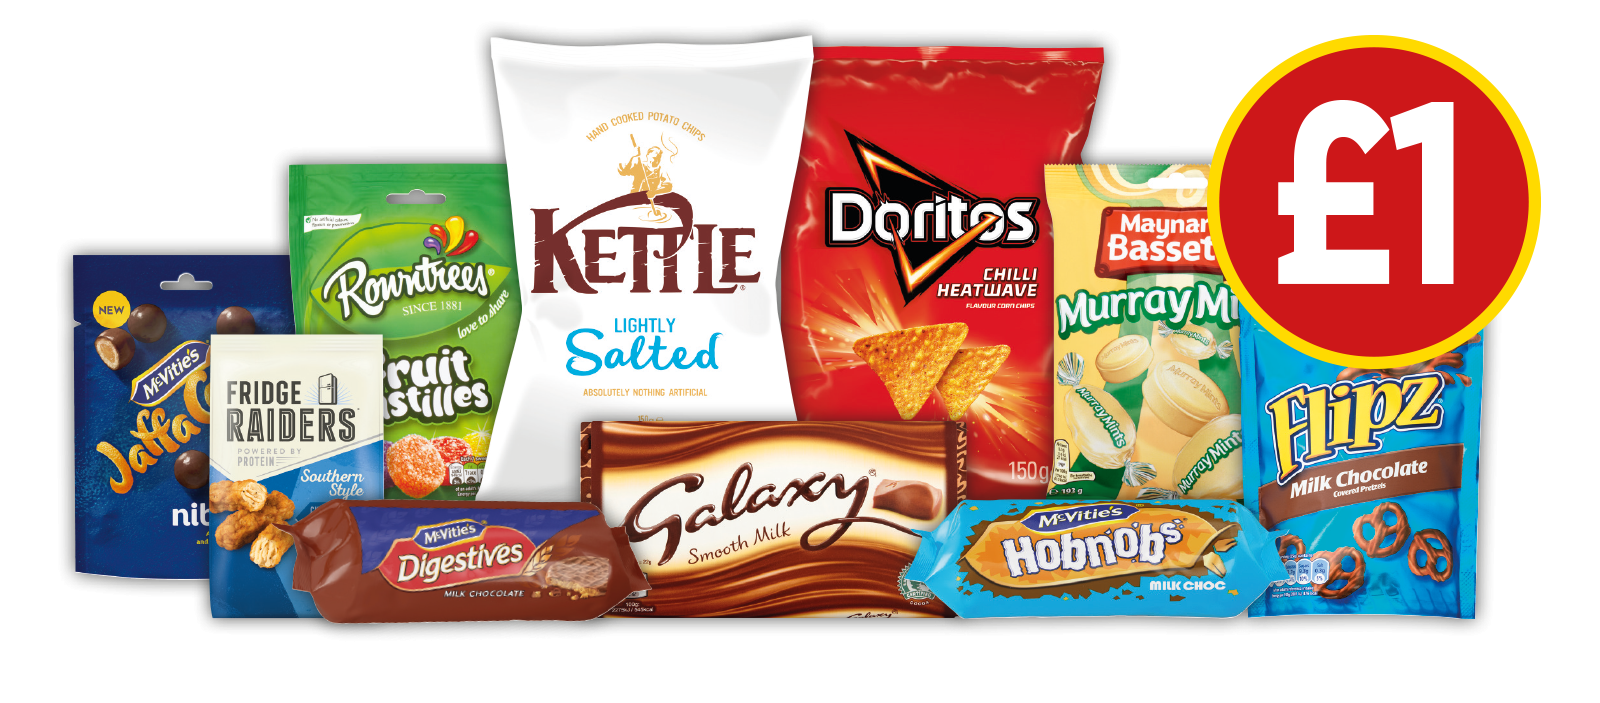 £1 DEALS: McVitie's Milk Chocolate Digestive, McVitie's Milk Chocolate Hobnobs, McVitie's Jaffa Nibbles, Flipz Milk Chocolate Pretzels, Rowntrees Fruit Pastilles Pouch, Galaxy Milk and more - £1 at Budgens